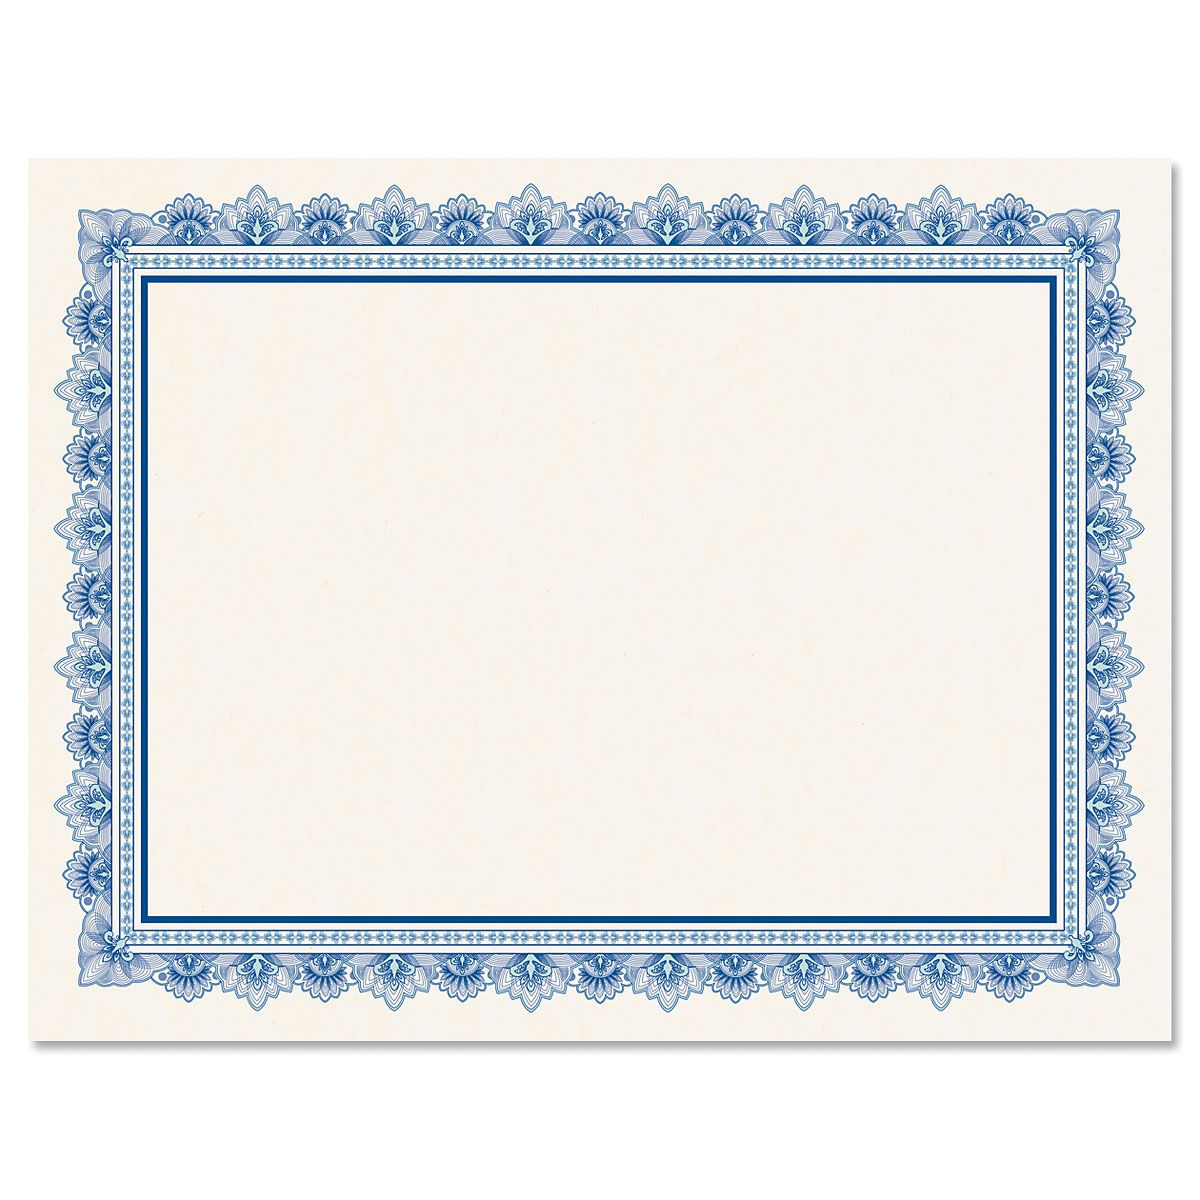 Intricate Blue Certificate on White Parchment - Set of 100